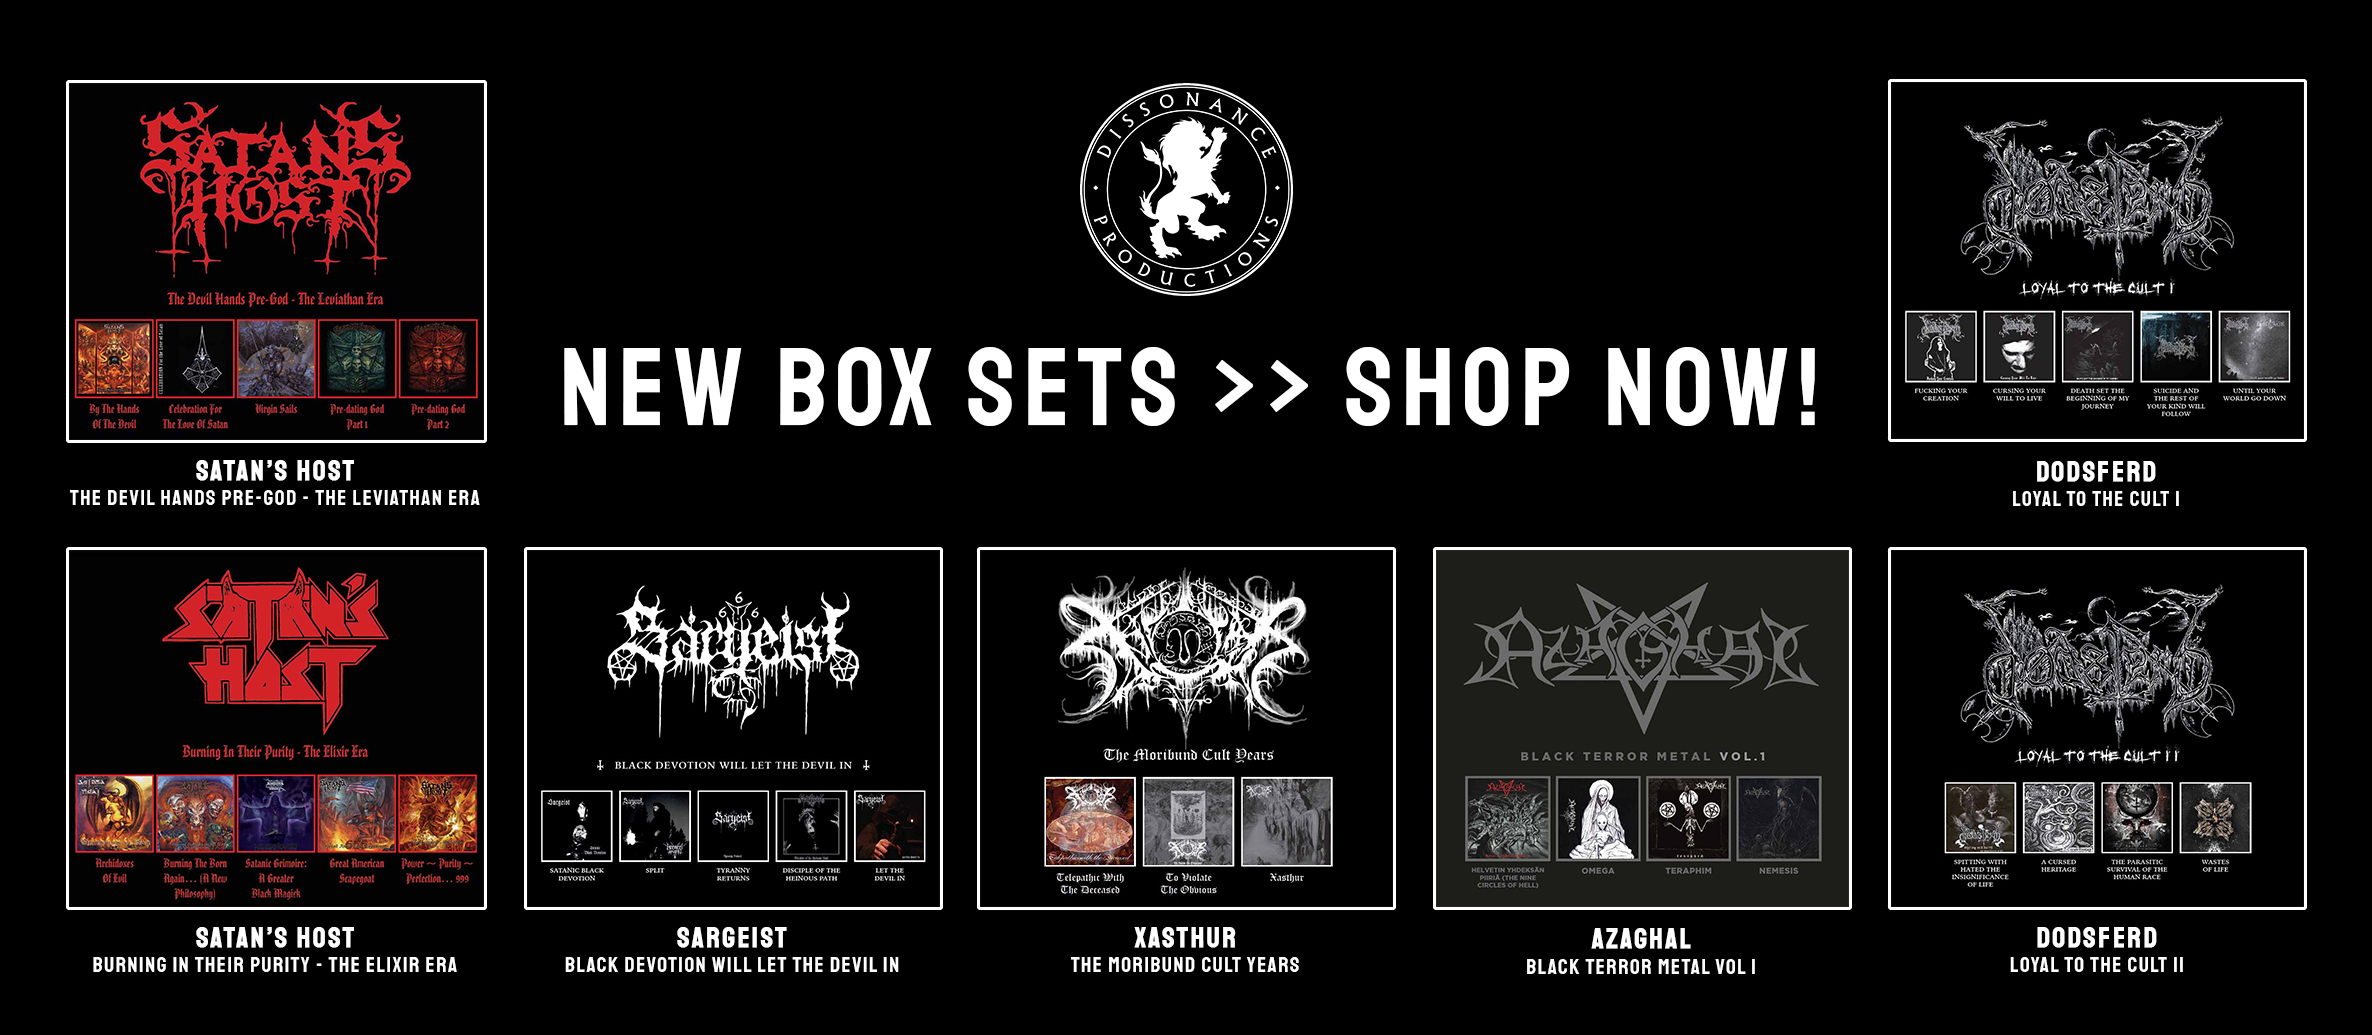 "BLACK METAL BONANZA – ""mirror, mirror, on the wall, who's the blackest of them all…"" – Dissonance Productions' seven new black metal box sets go under the microscope."